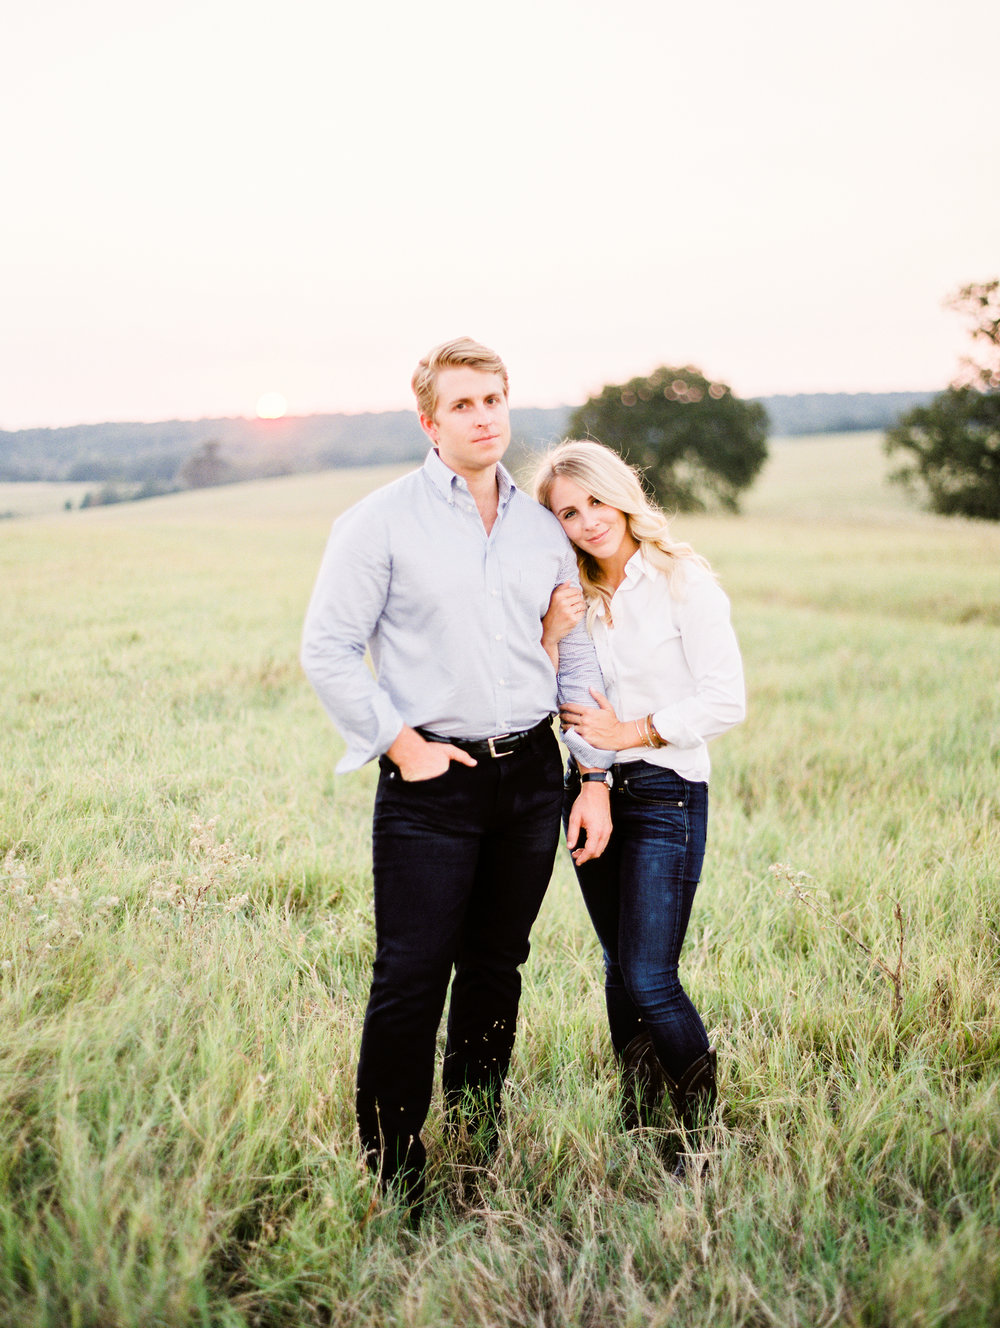 Lauren+John+Engaged+TX-98.jpg